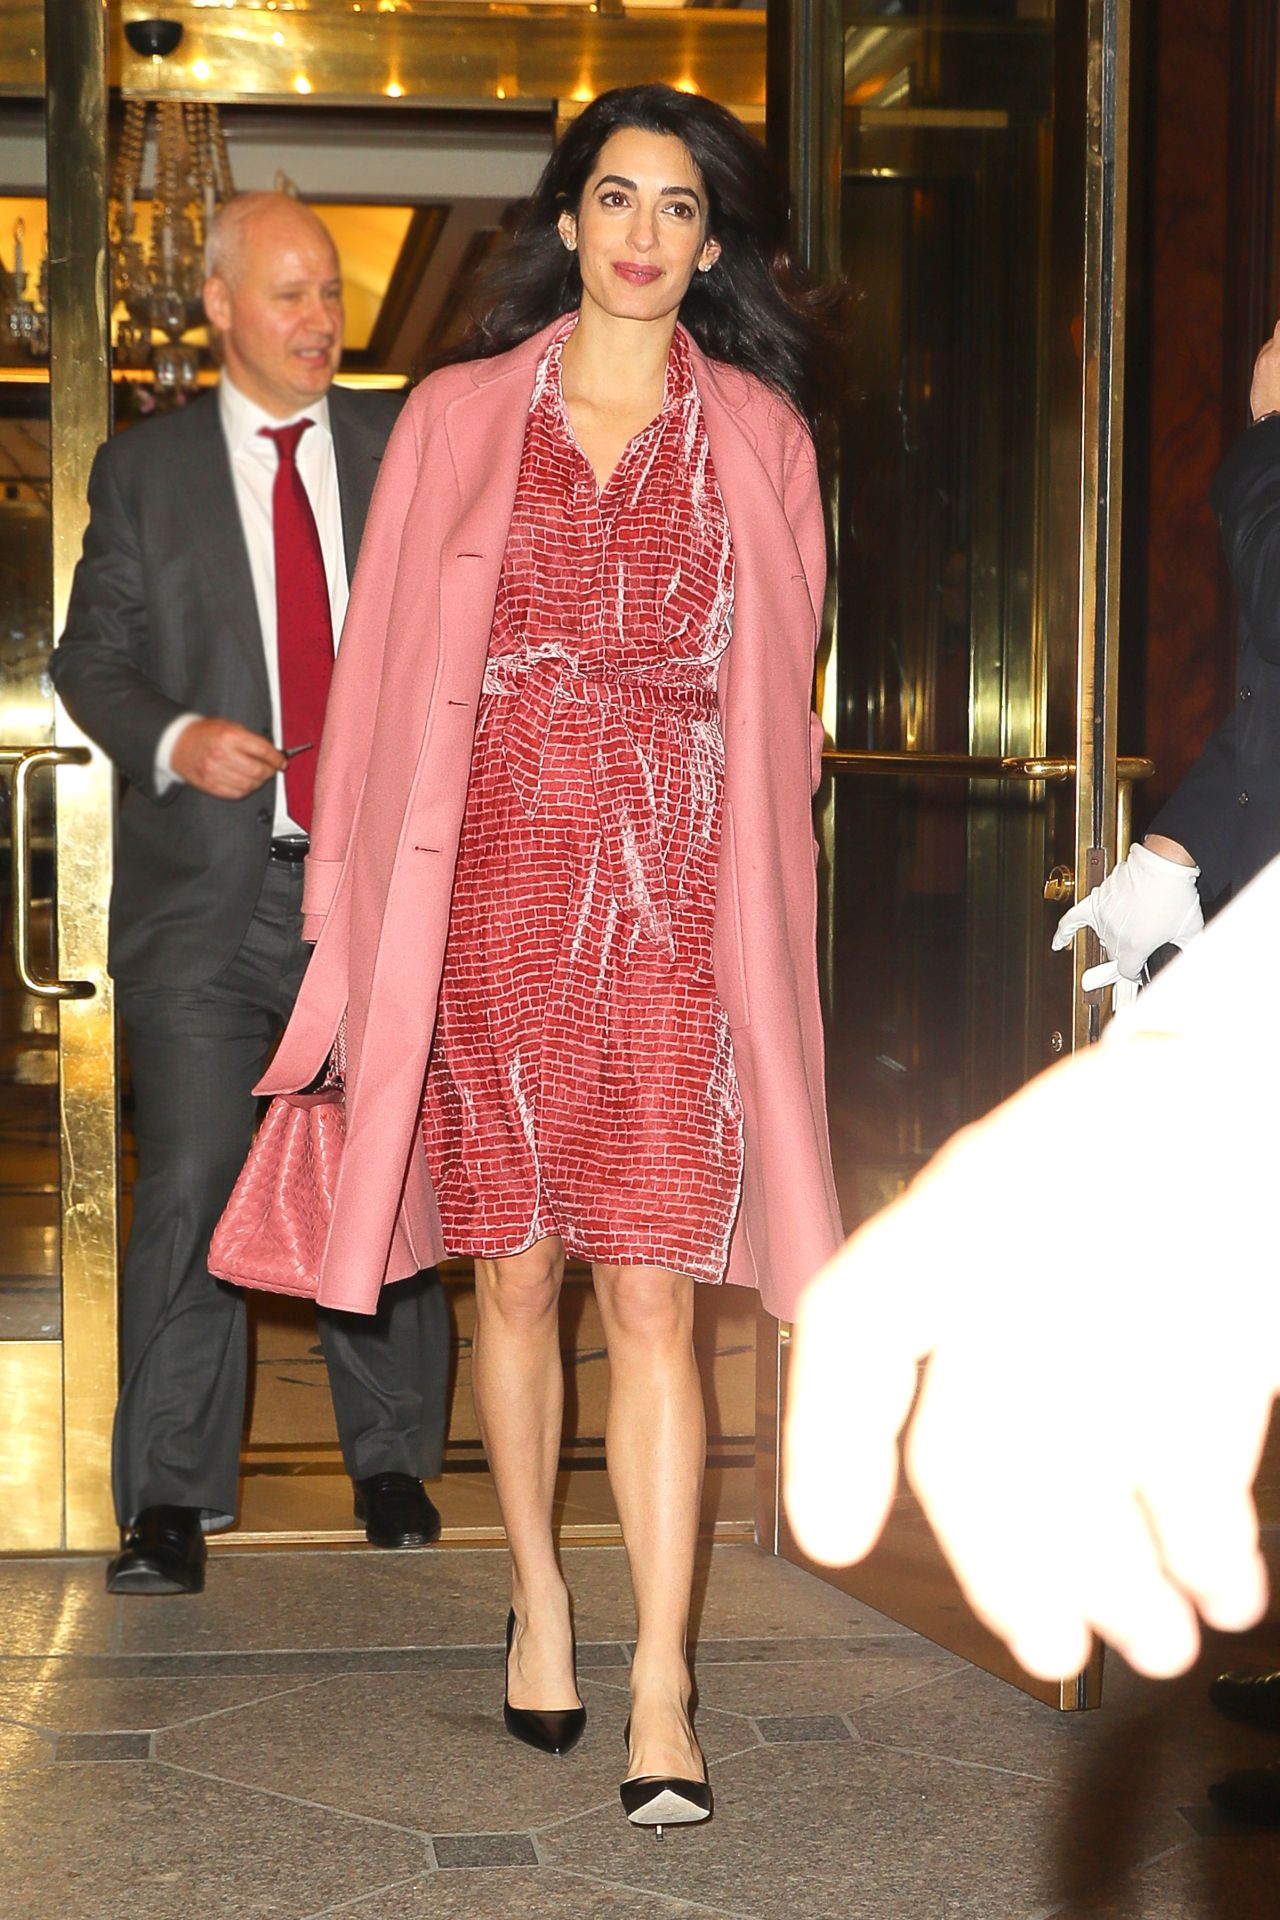 EXCLUSIVE: **PREMIUM EXCLUSIVE RATES APPLY** Amal Clooney looks radiant in a pink velvet dress and pink coat with matching bag while leaving a private dinner in New York City <P> Pictured: Amal Clooney <B>Ref: SPL1458884  080317   EXCLUSIVE</B><BR/> Picture by: Felipe Ramales / Splash News<BR/> </P><P> <B>Splash News and Pictures</B><BR/> Los Angeles: 310-821-2666<BR/> New York: 212-619-2666<BR/> London: 870-934-2666<BR/> photodesk@splashnews.com<BR/> </P>